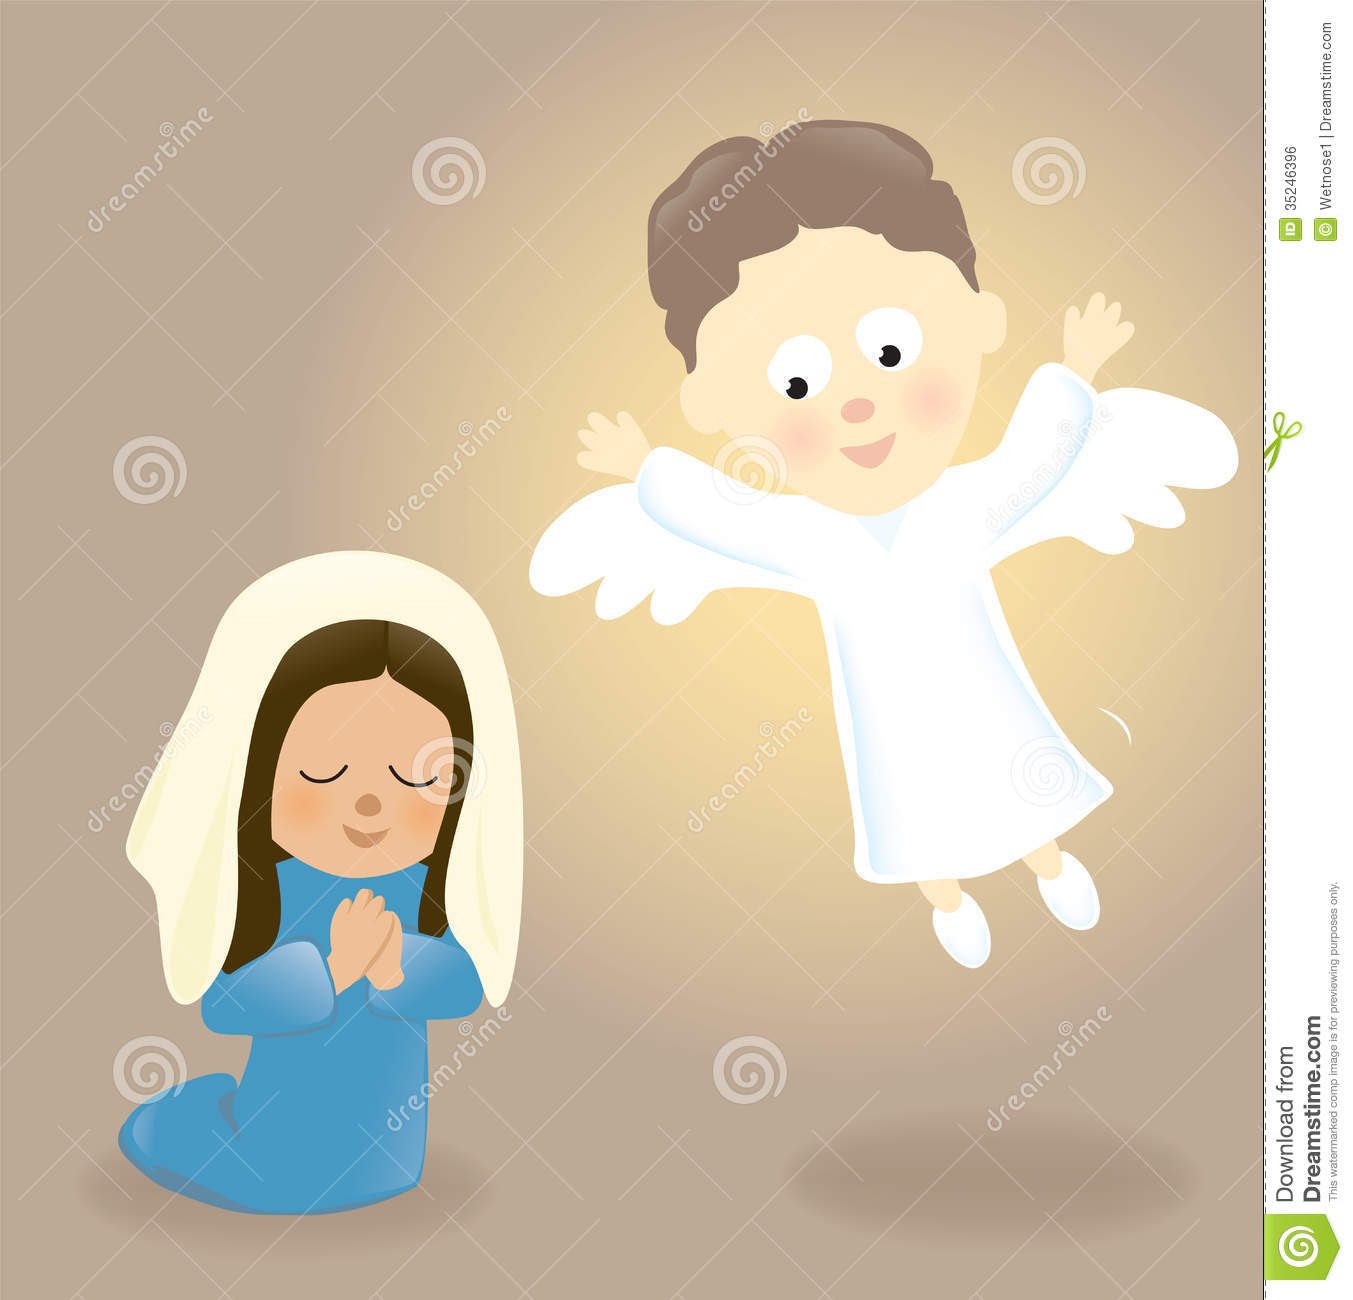 mary and the angel royalty free stock image image 35246396 free animated nativity scene clipart free nativity scene clipart images